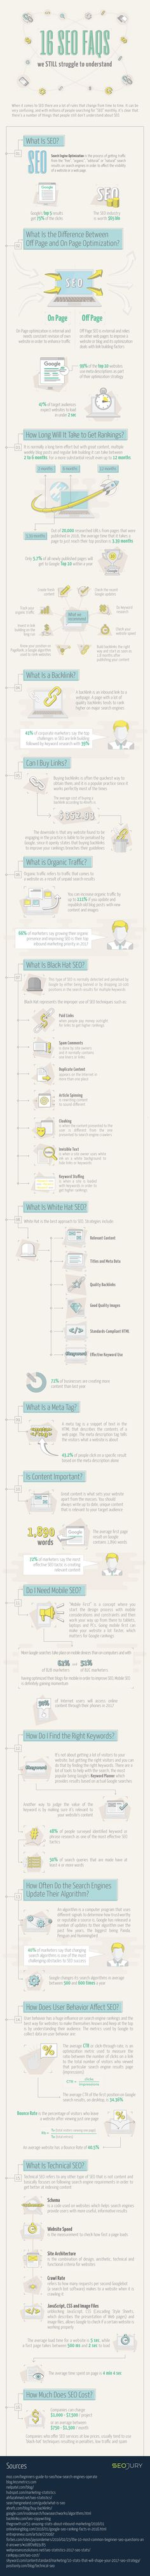 16 SEO FAQs We Still Struggle to Understand - #Infographic